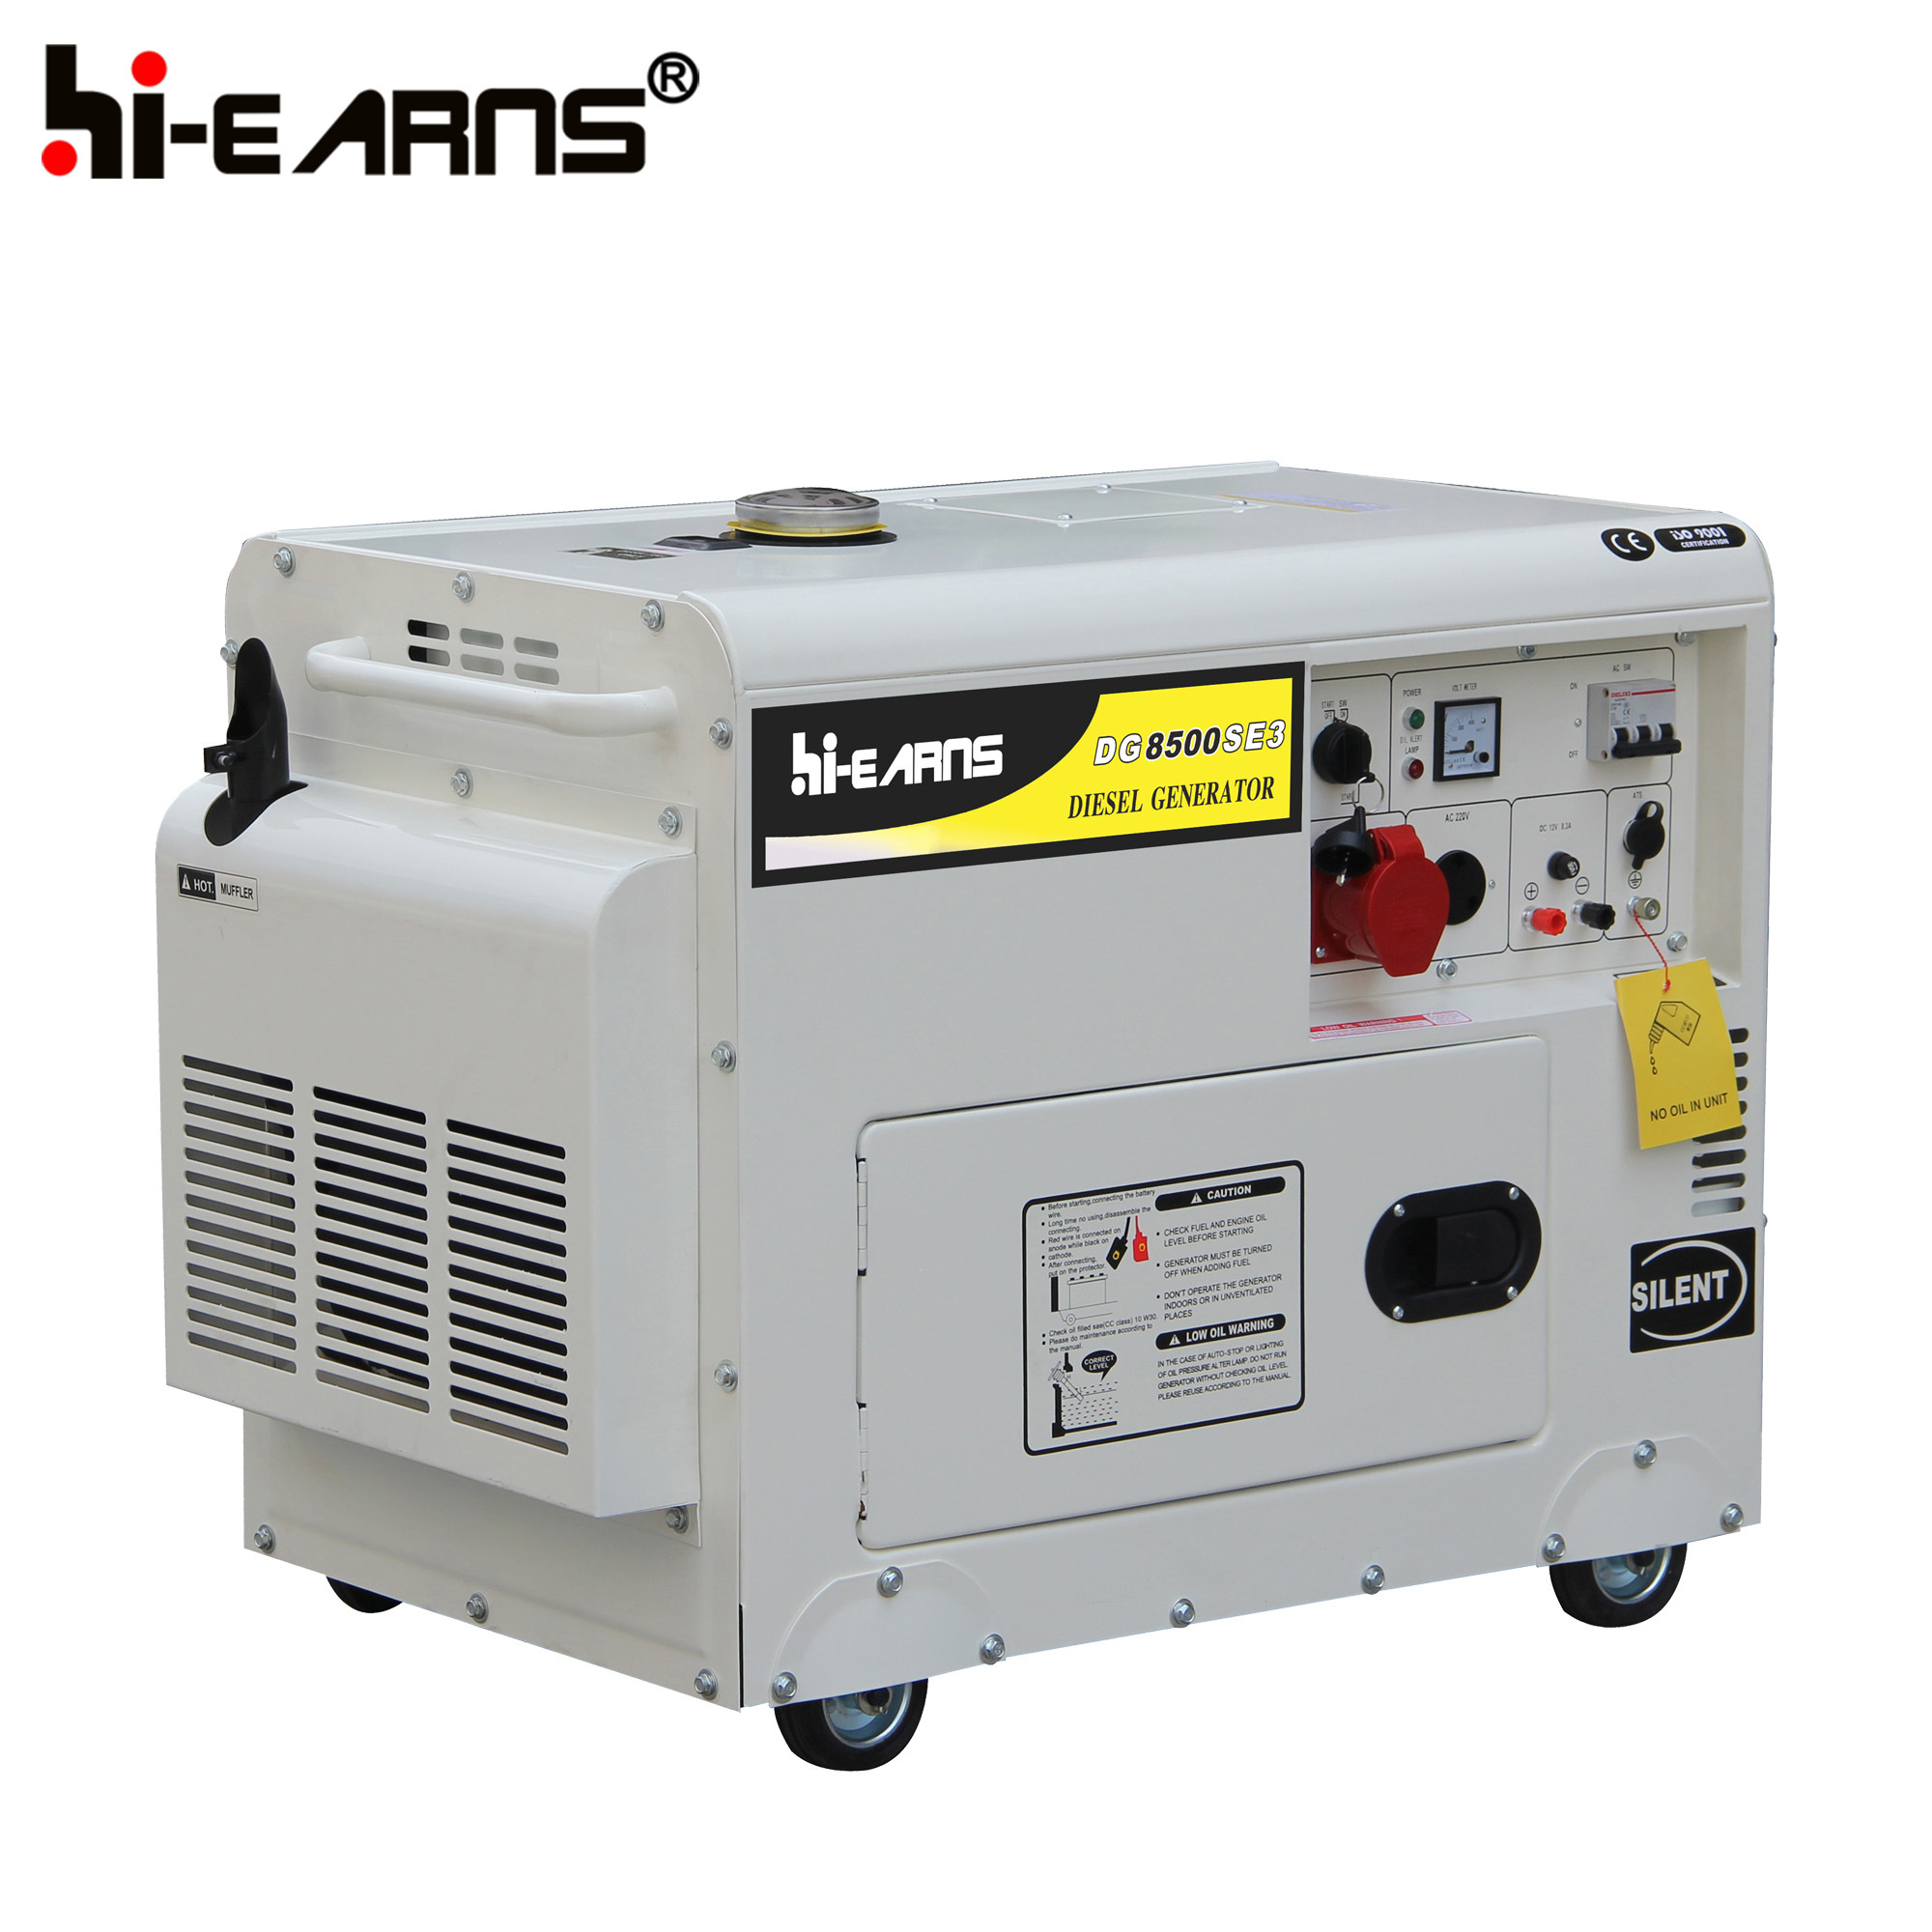 China 6 5kw Silent Type Diesel Generator for Home Use DG8500SE